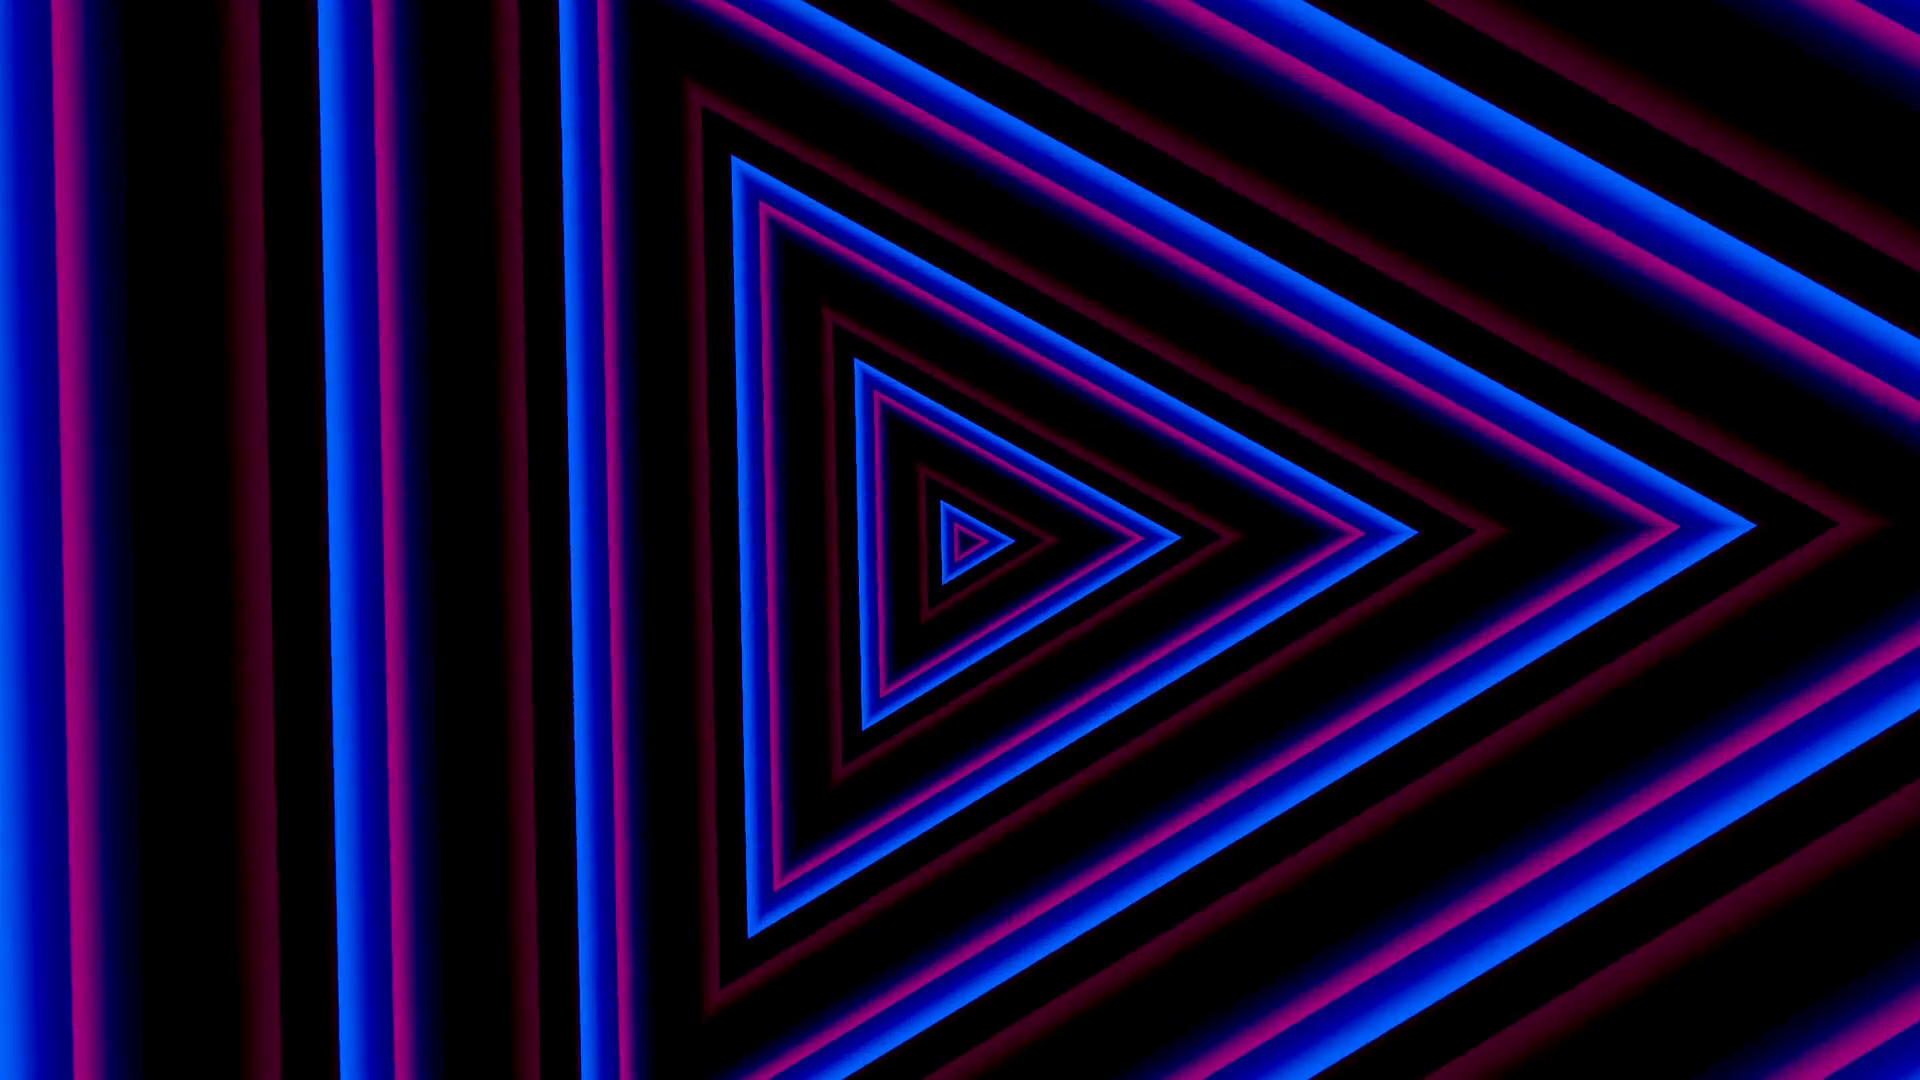 Neon Light Backgrounds (64+ images)